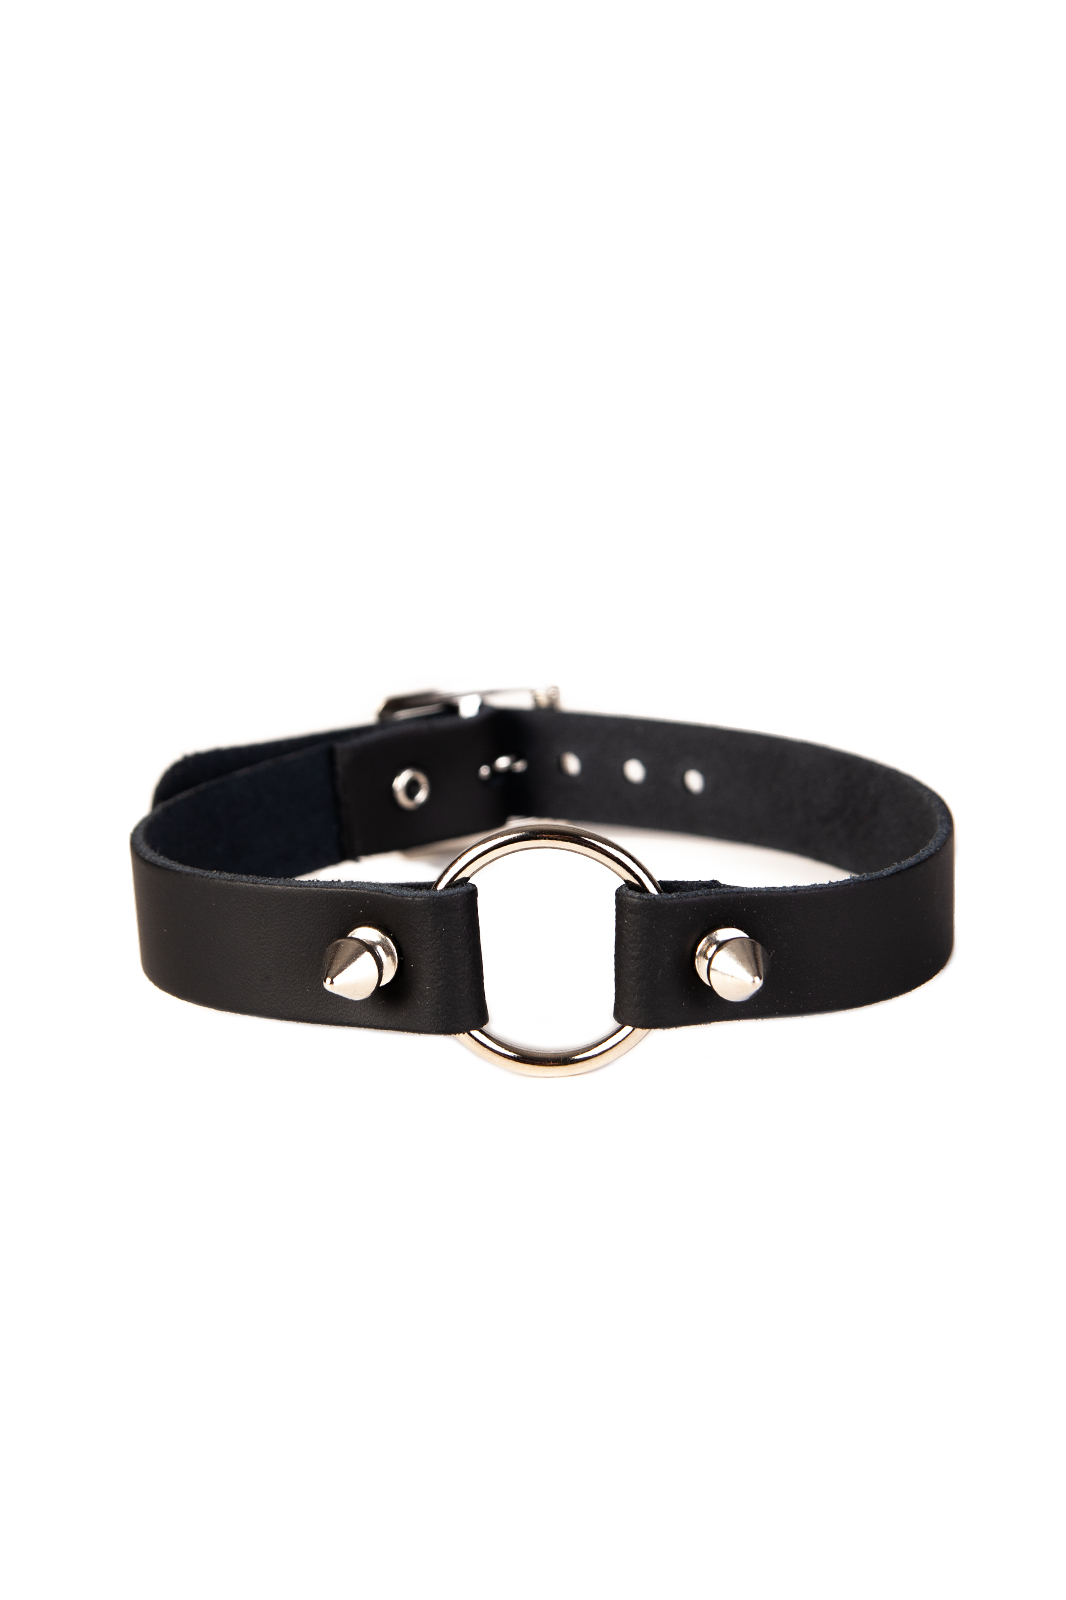 1 Row Ring With Spike Leather Choker Black